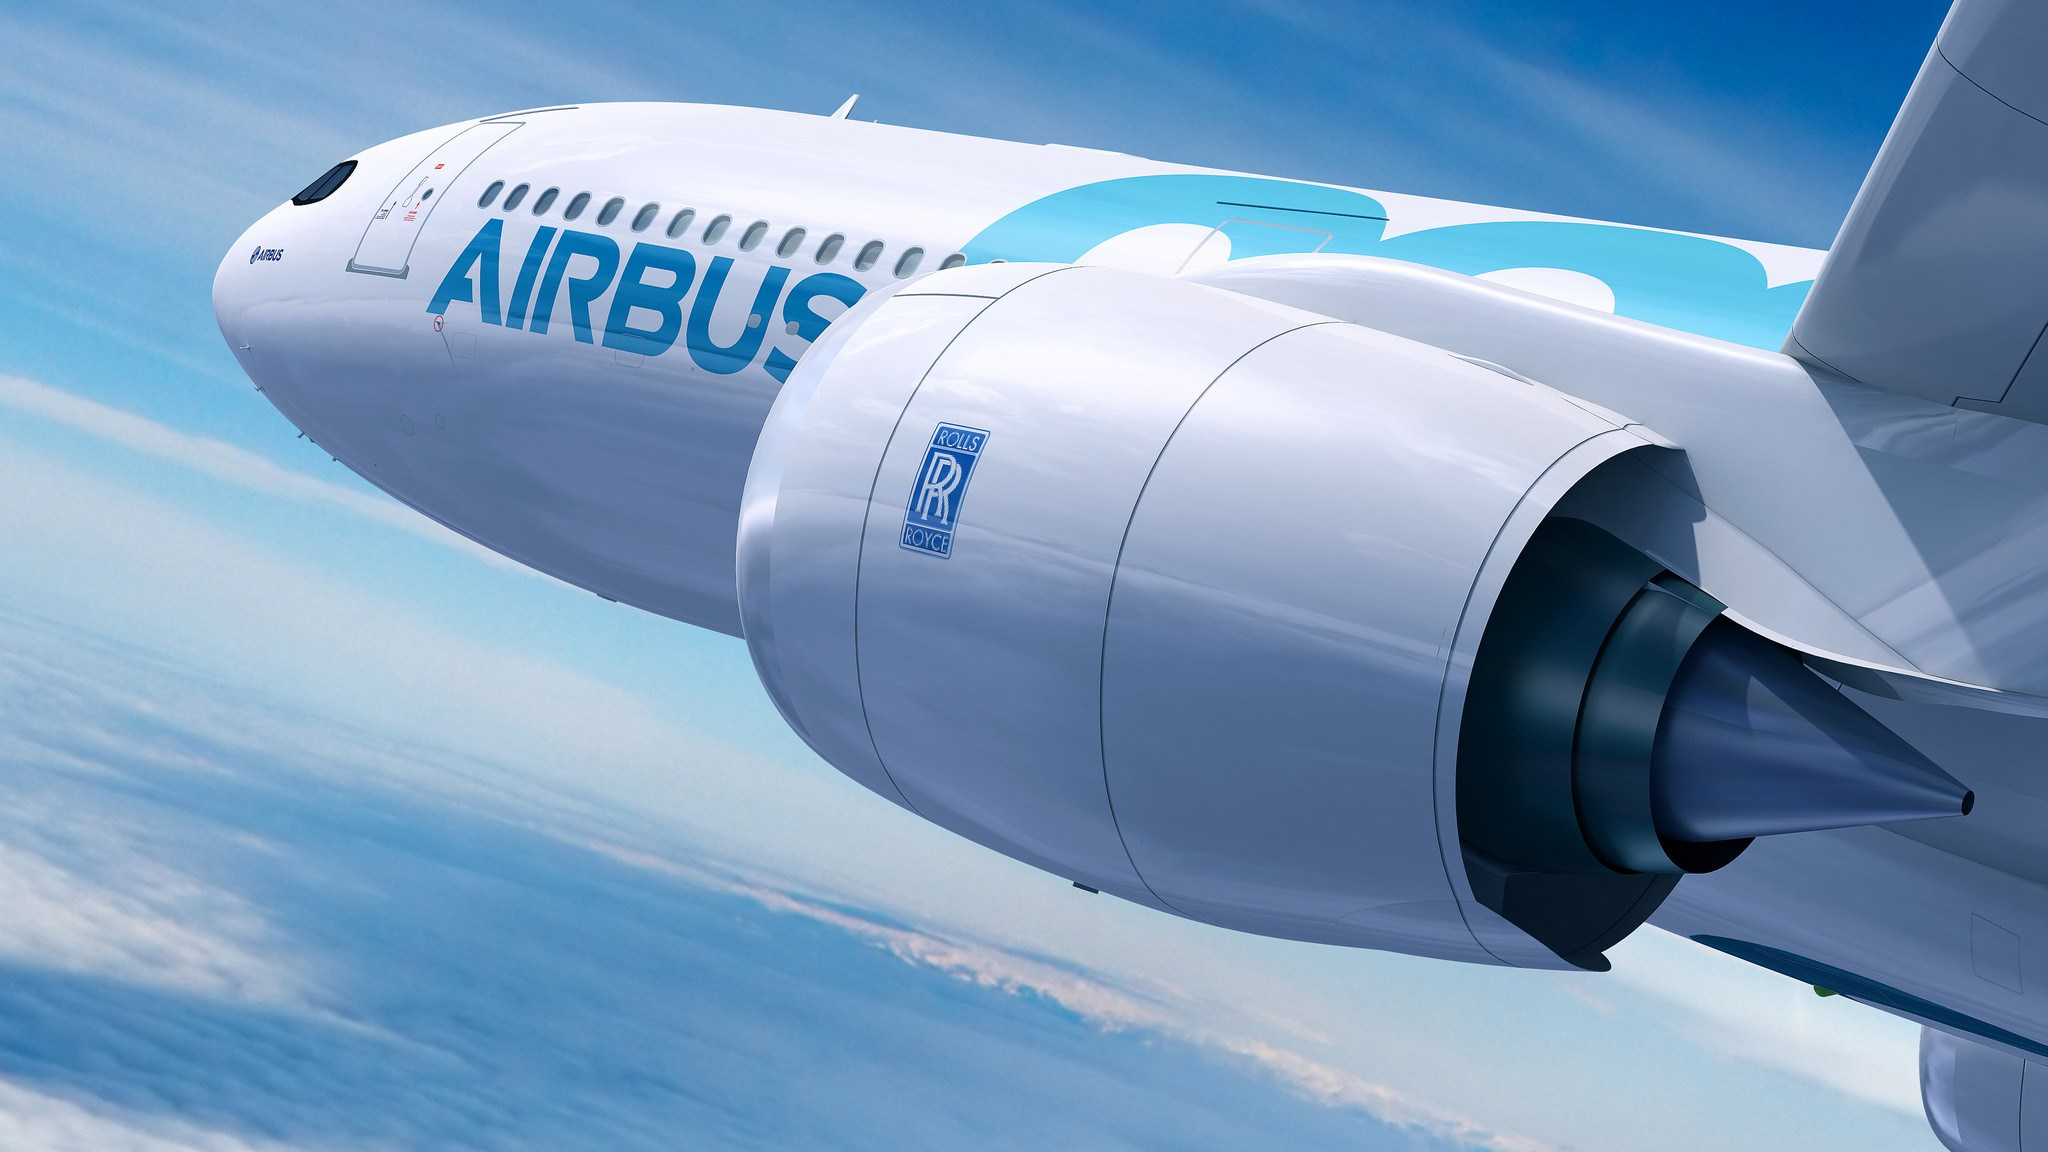 Airbus A330 with Rolls-Royce Trent 7000 engines